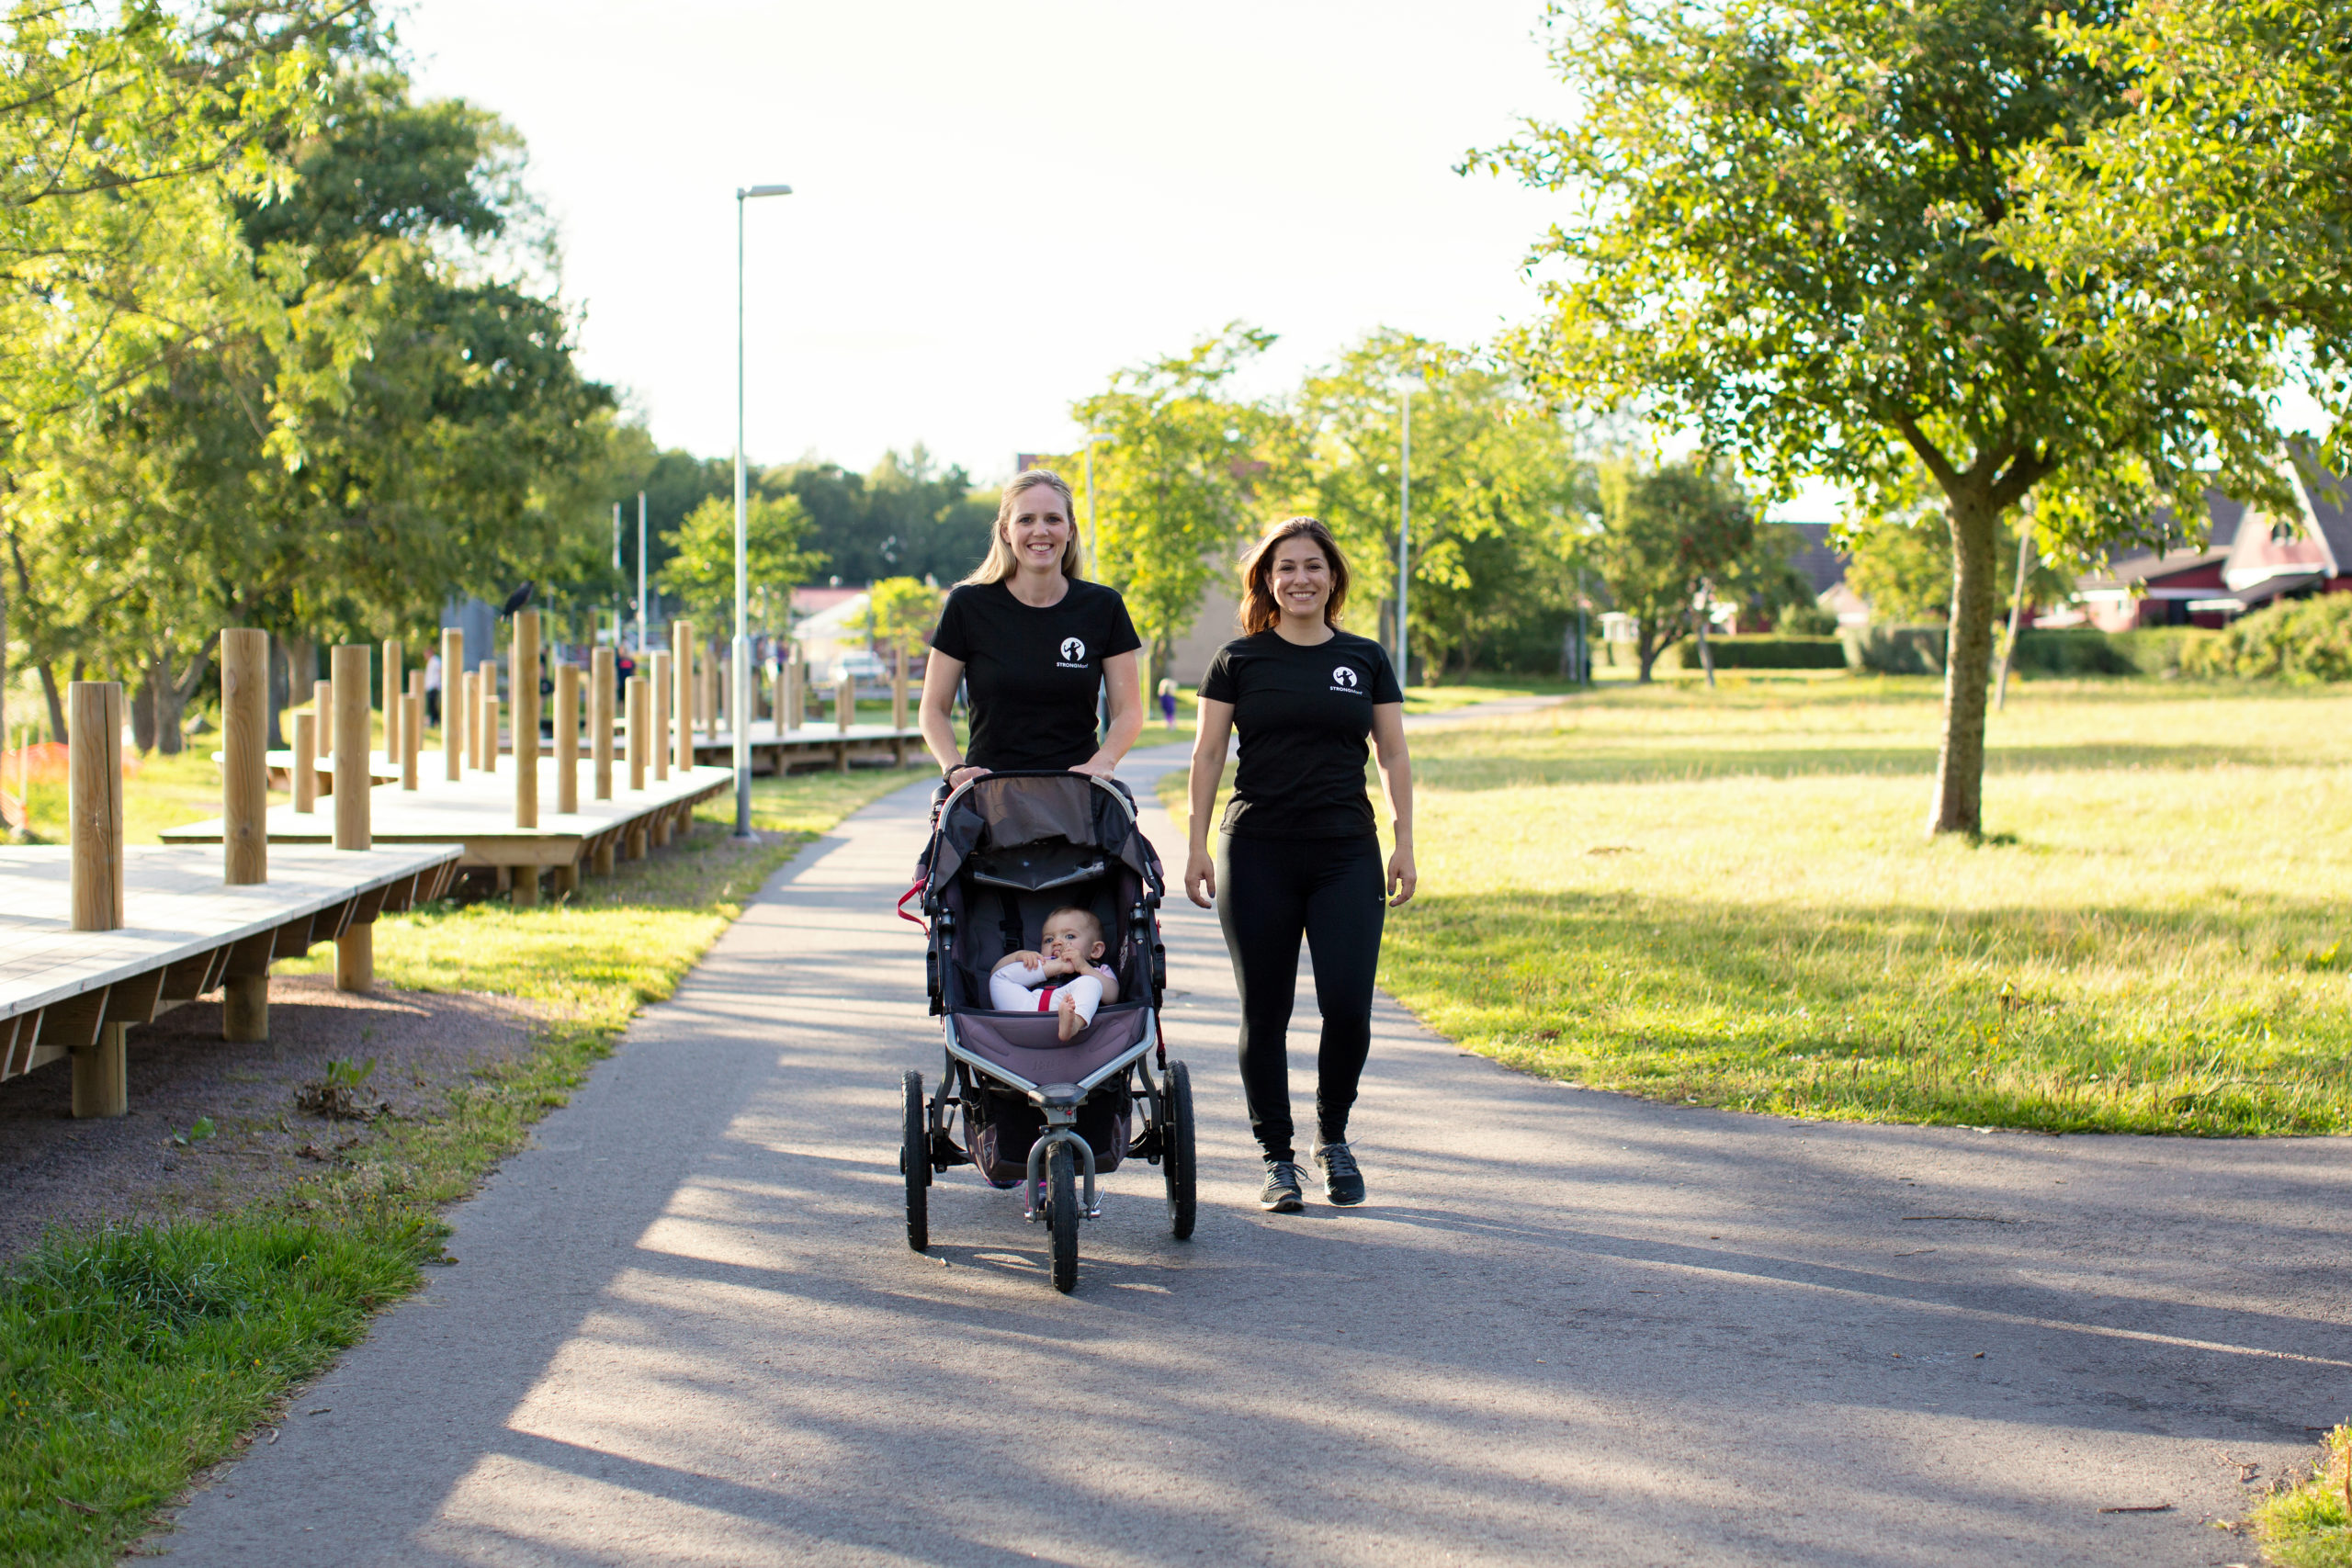 Return to running after pregnancy – Is your body strong enough for running?